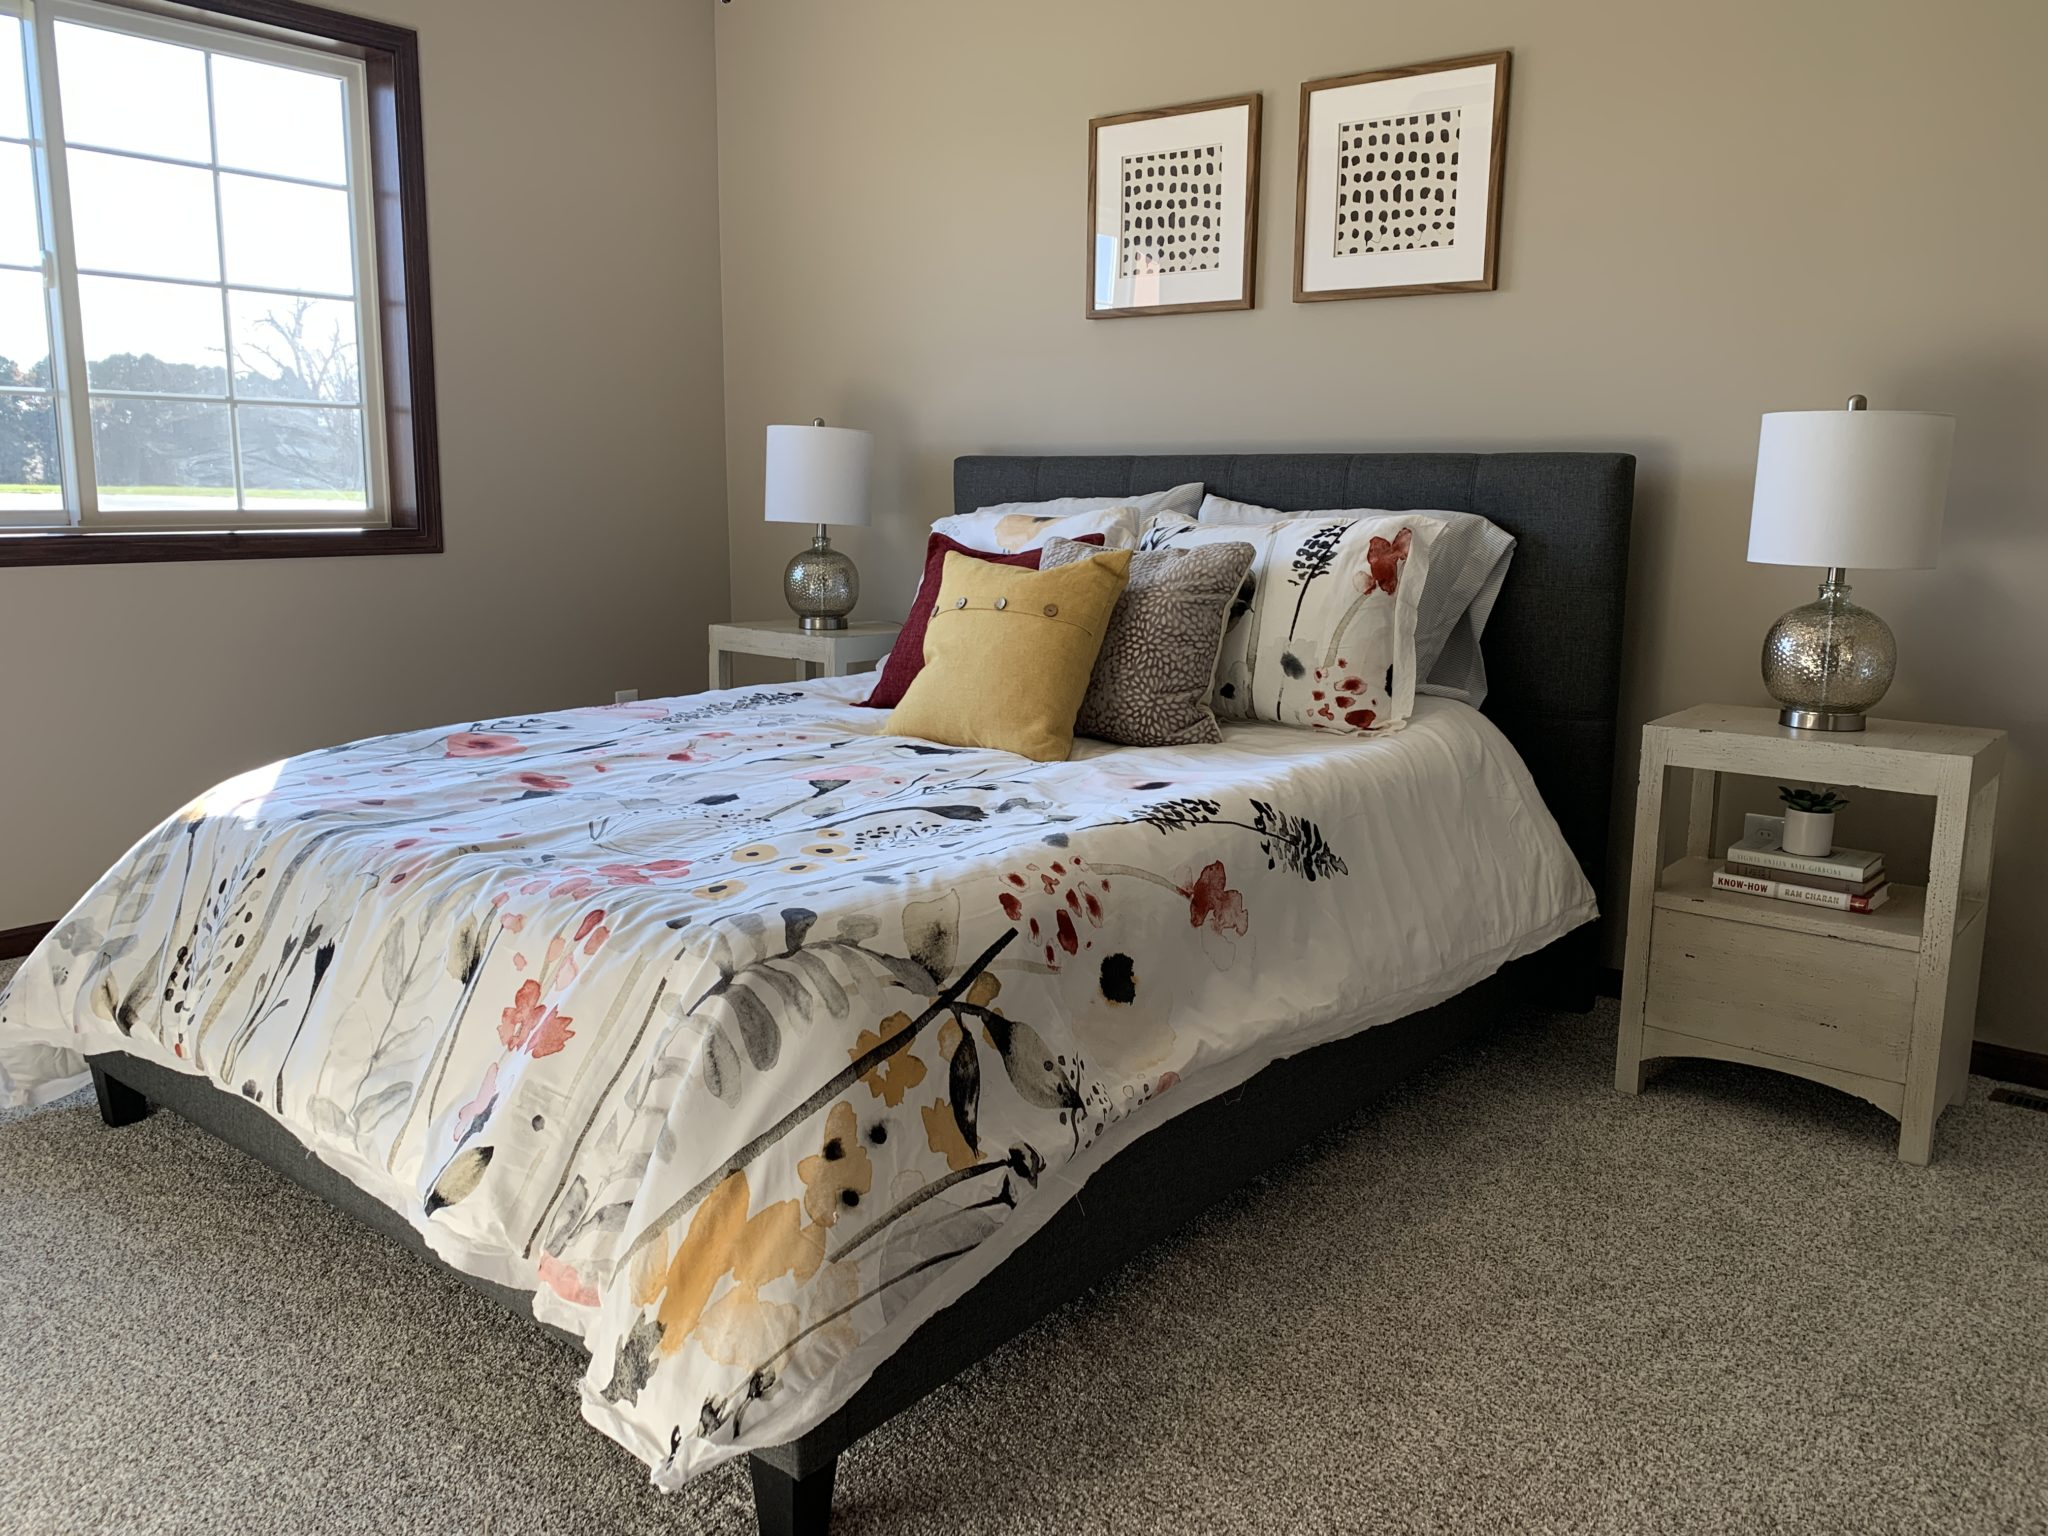 Bedroom with Carpeting